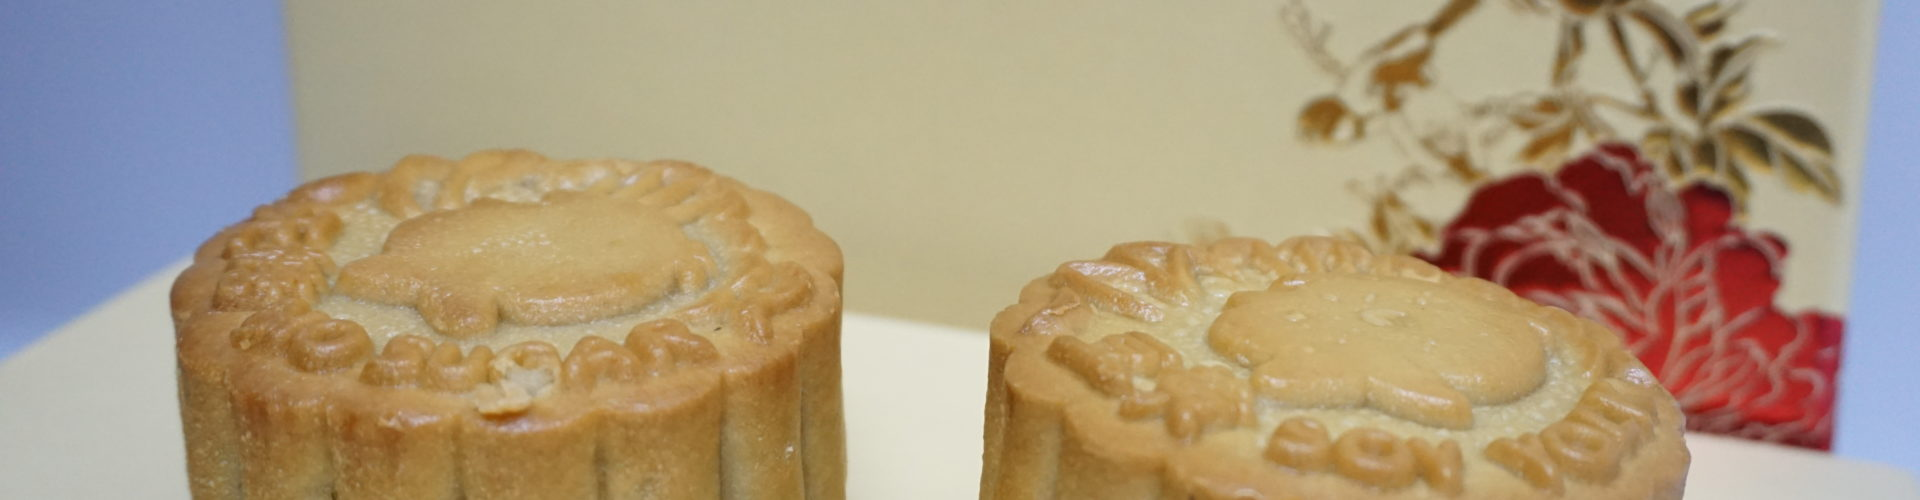 Get your hands on healthier mooncakes this Mid-Autumn Festival